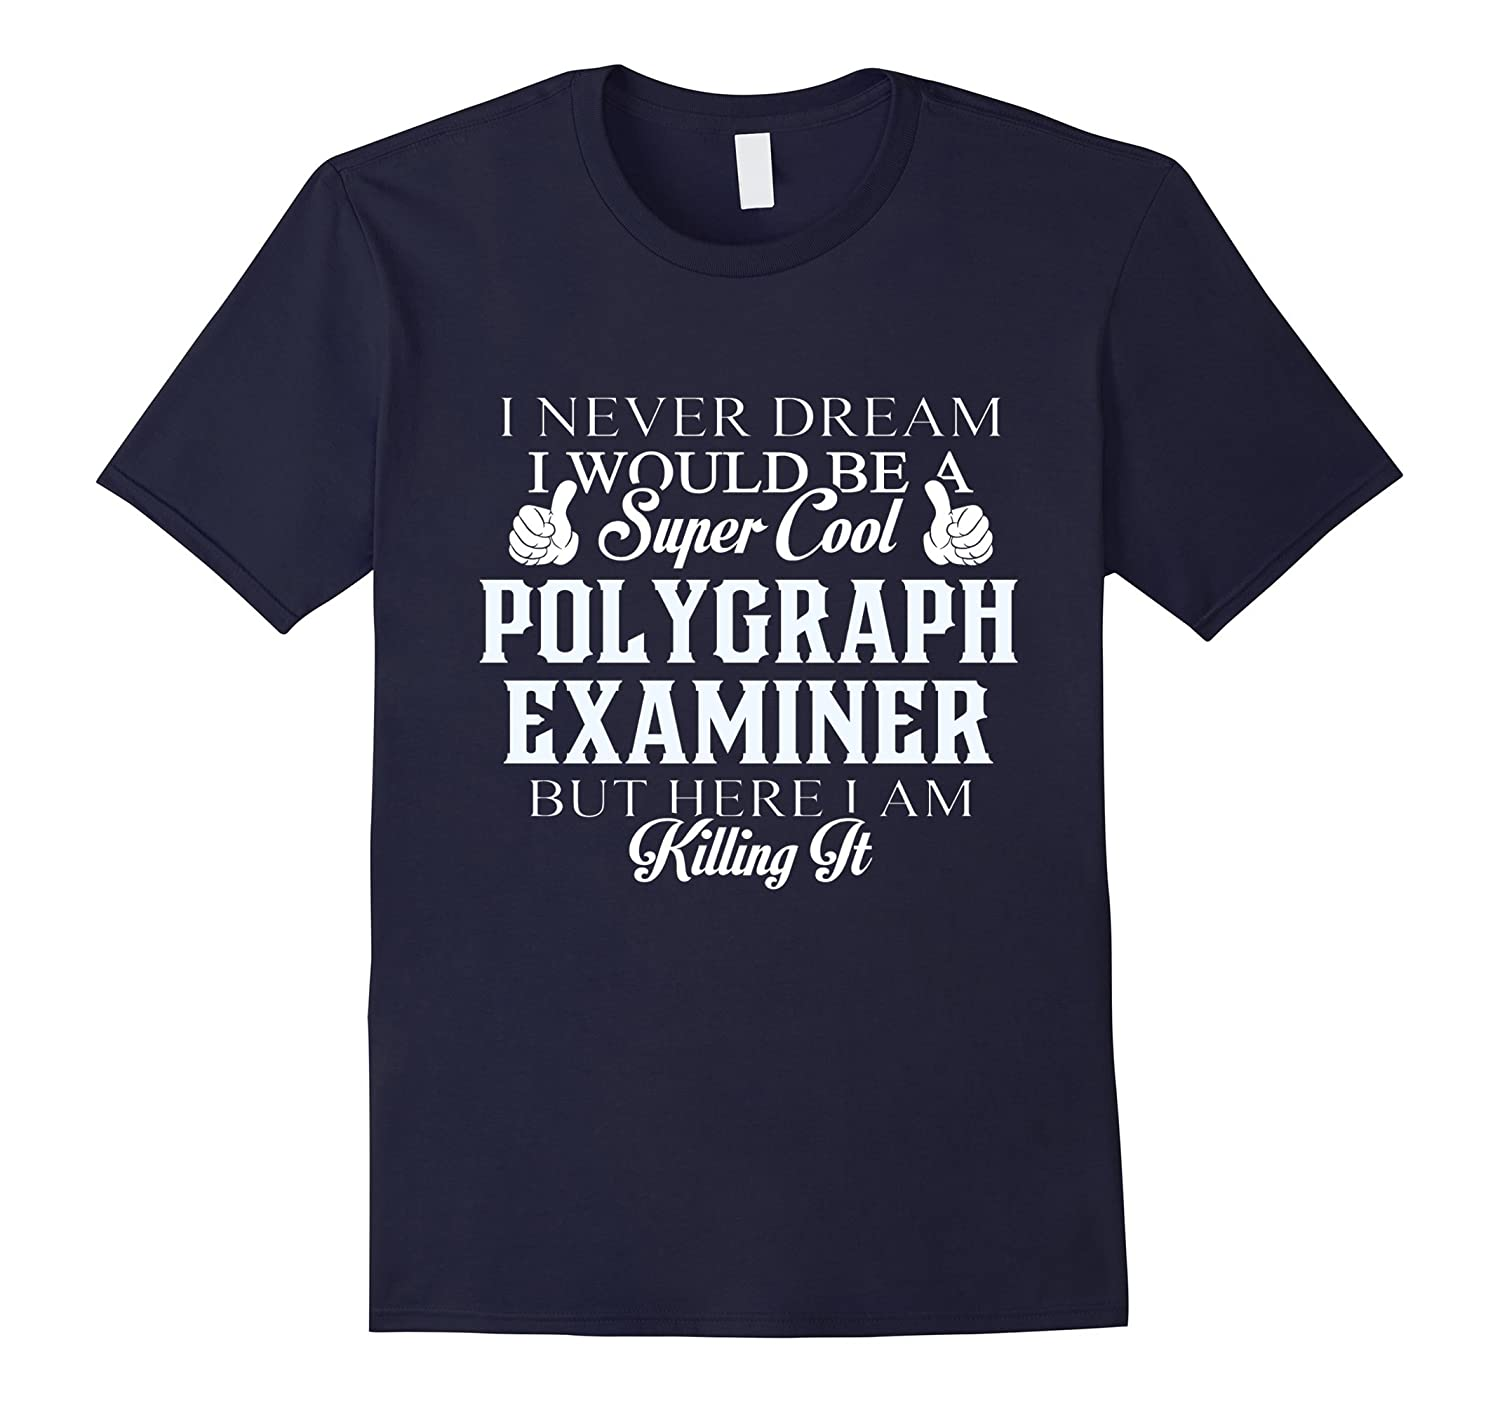 Dreamed would be super cool Polygraph examiner killing it-TH